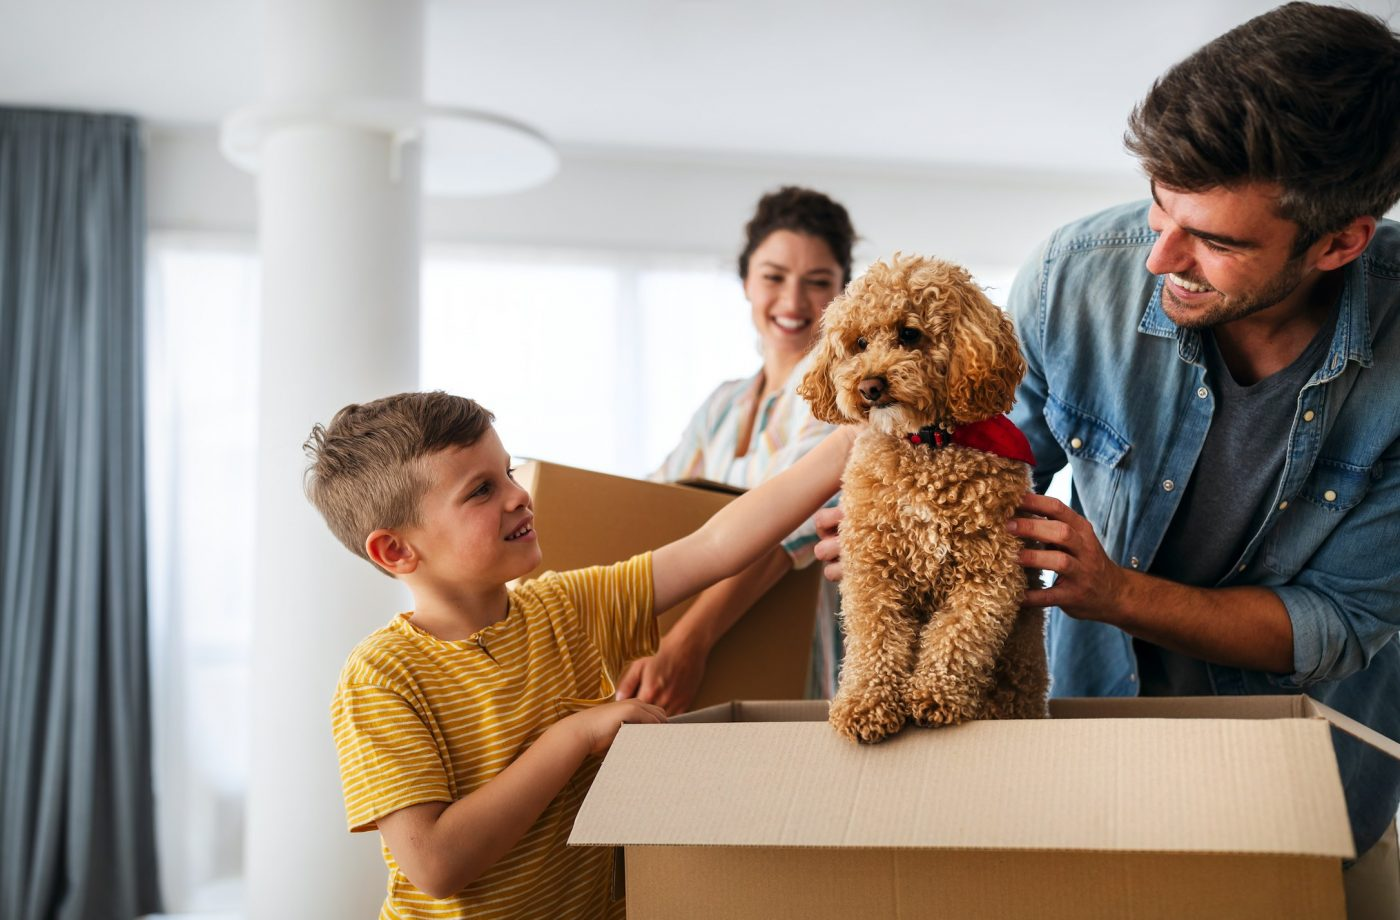 Family Pets During Move - 5 Tips To Make The Relocation Smooth - NEDRAC Keeps You Moving